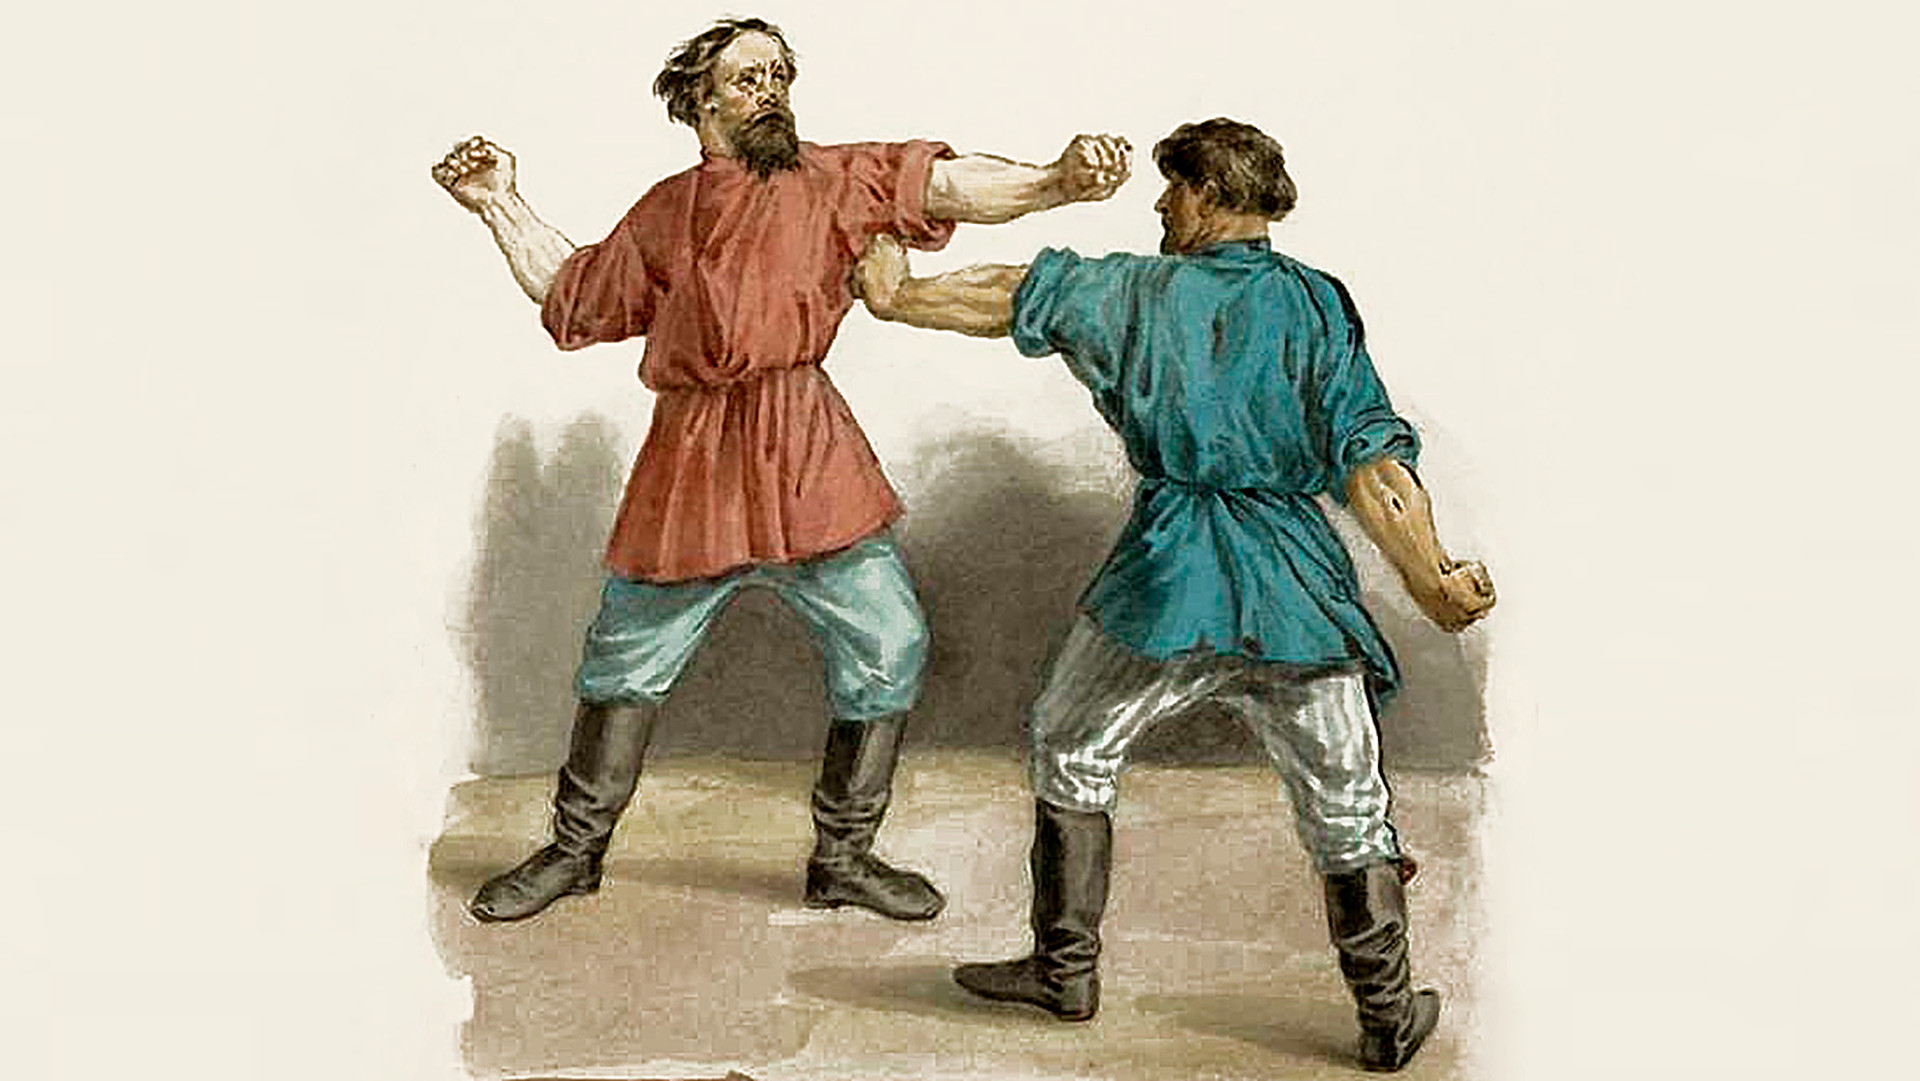 An episode from a fist fight (19-century illustration)